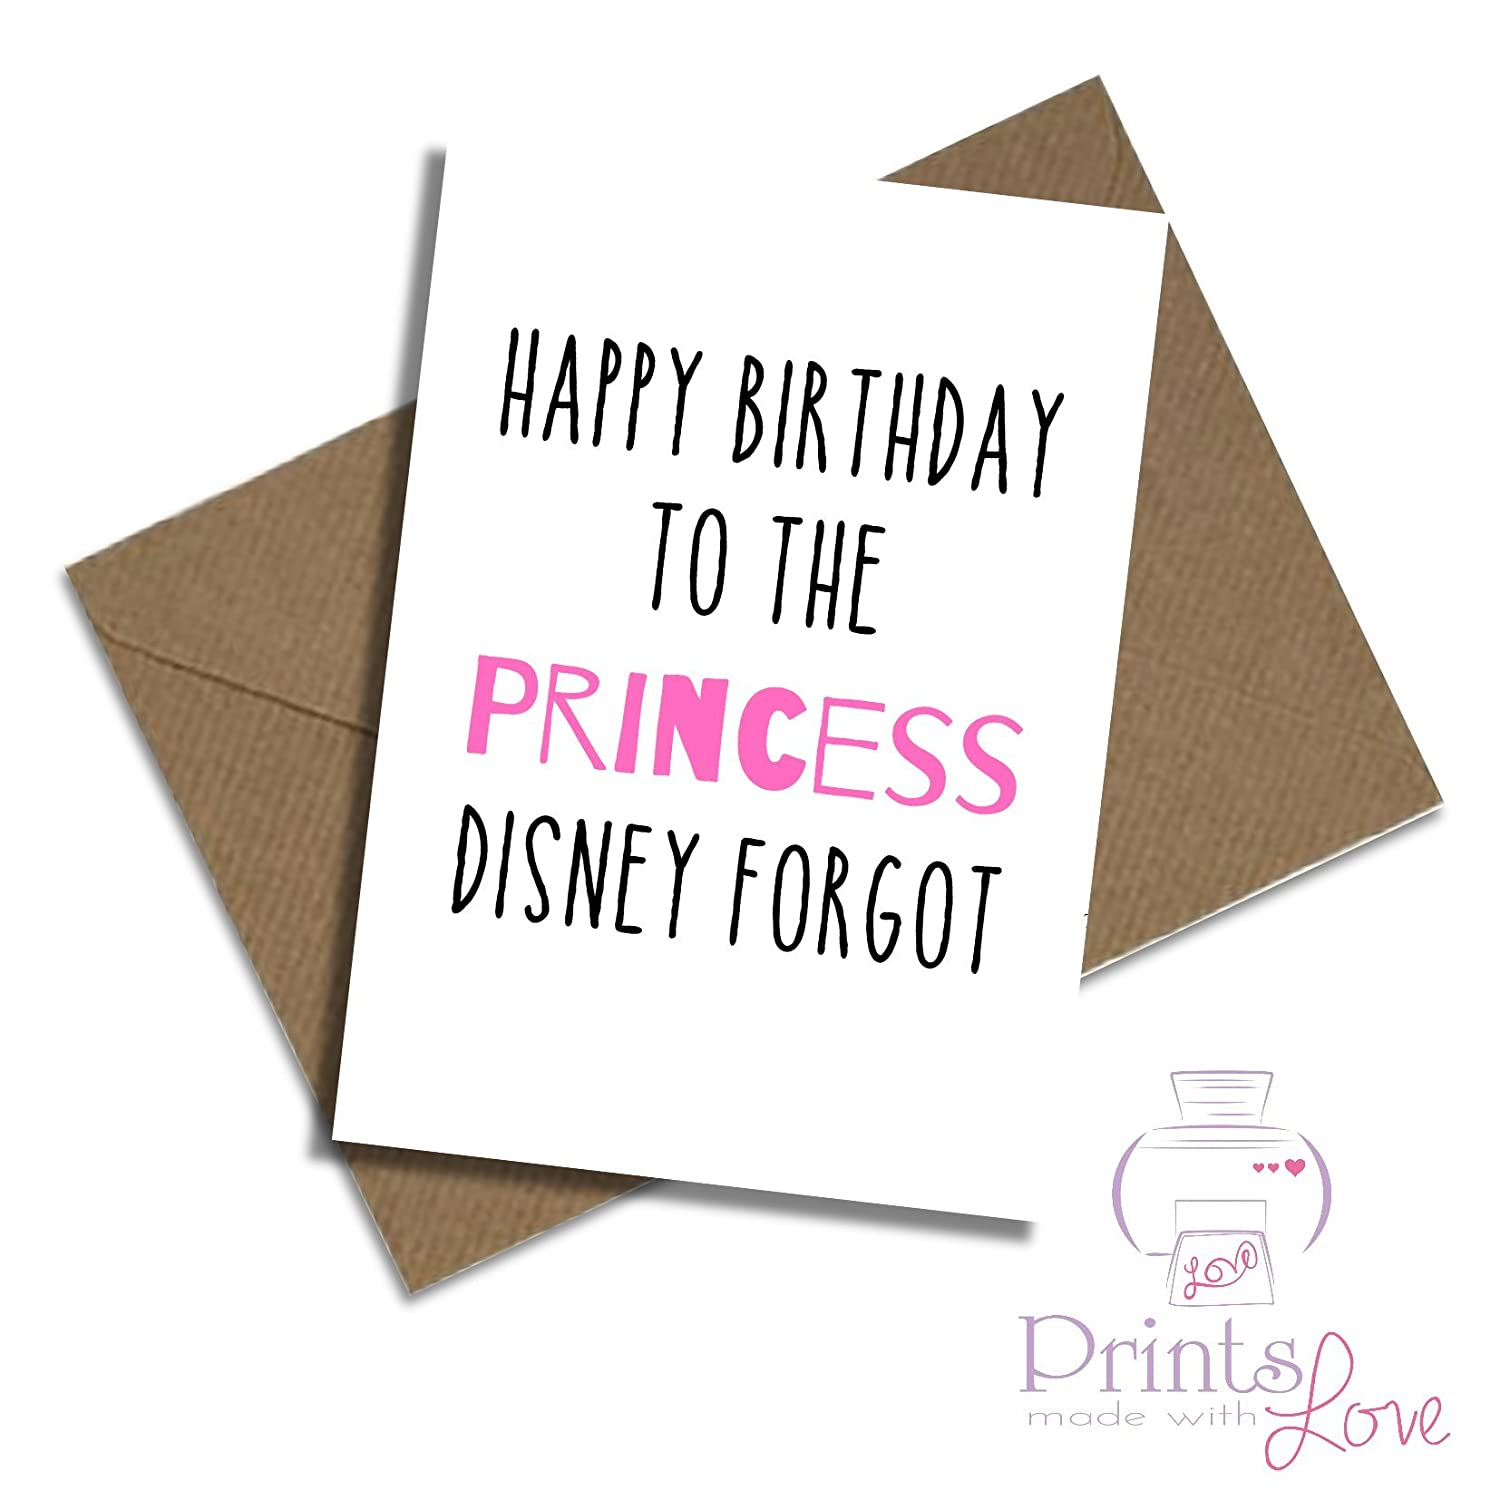 Happy birthday to the Princess Disney forgot A5 card: Amazon.co.uk ...